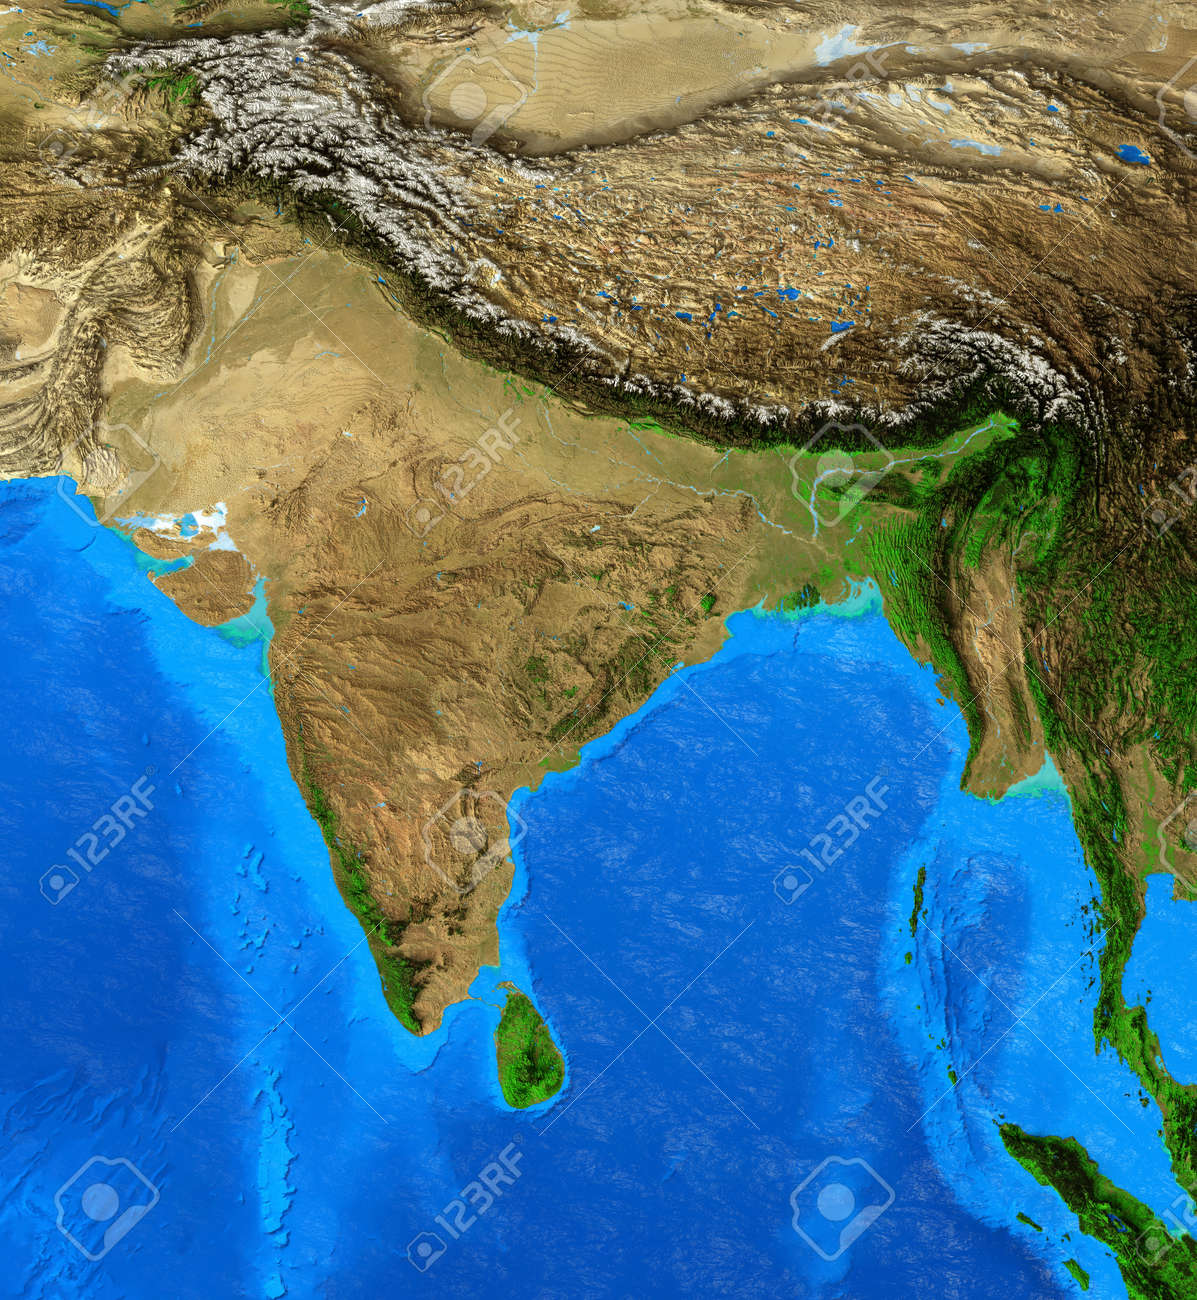 Physical map of India, Nepal, Himalayas and Tibet. Detailed flat view of the Planet Earth and its landforms. 3D illustration - 164461756